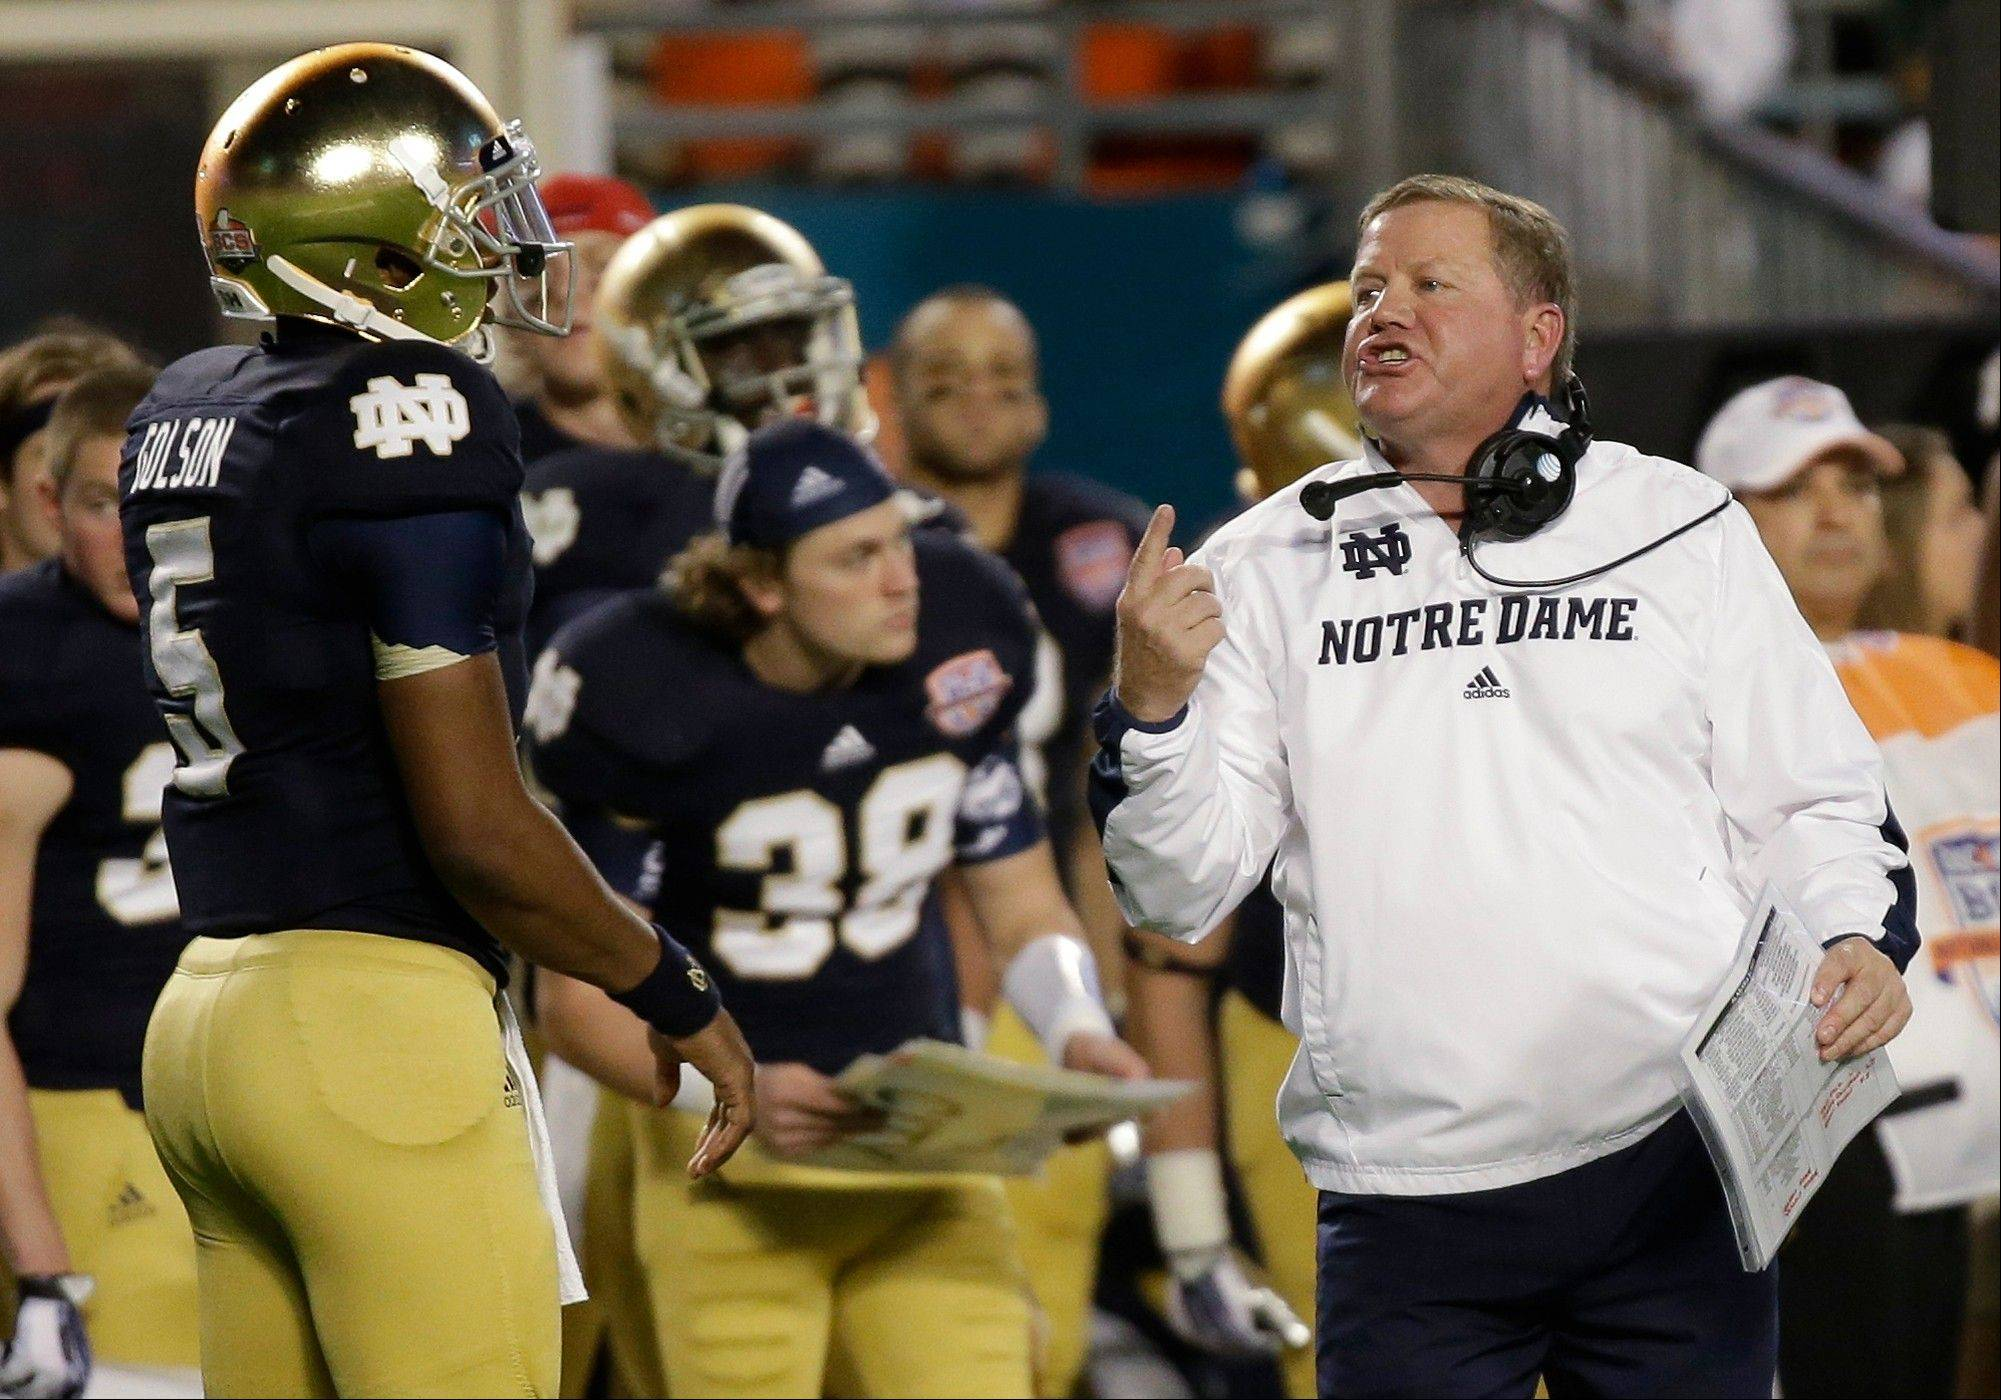 Notre Dame head coach Brian Kelly talks to Everett Golson during the first half of the BCS National Championship college football game against Alabama Monday, Jan. 7, 2013, in Miami.